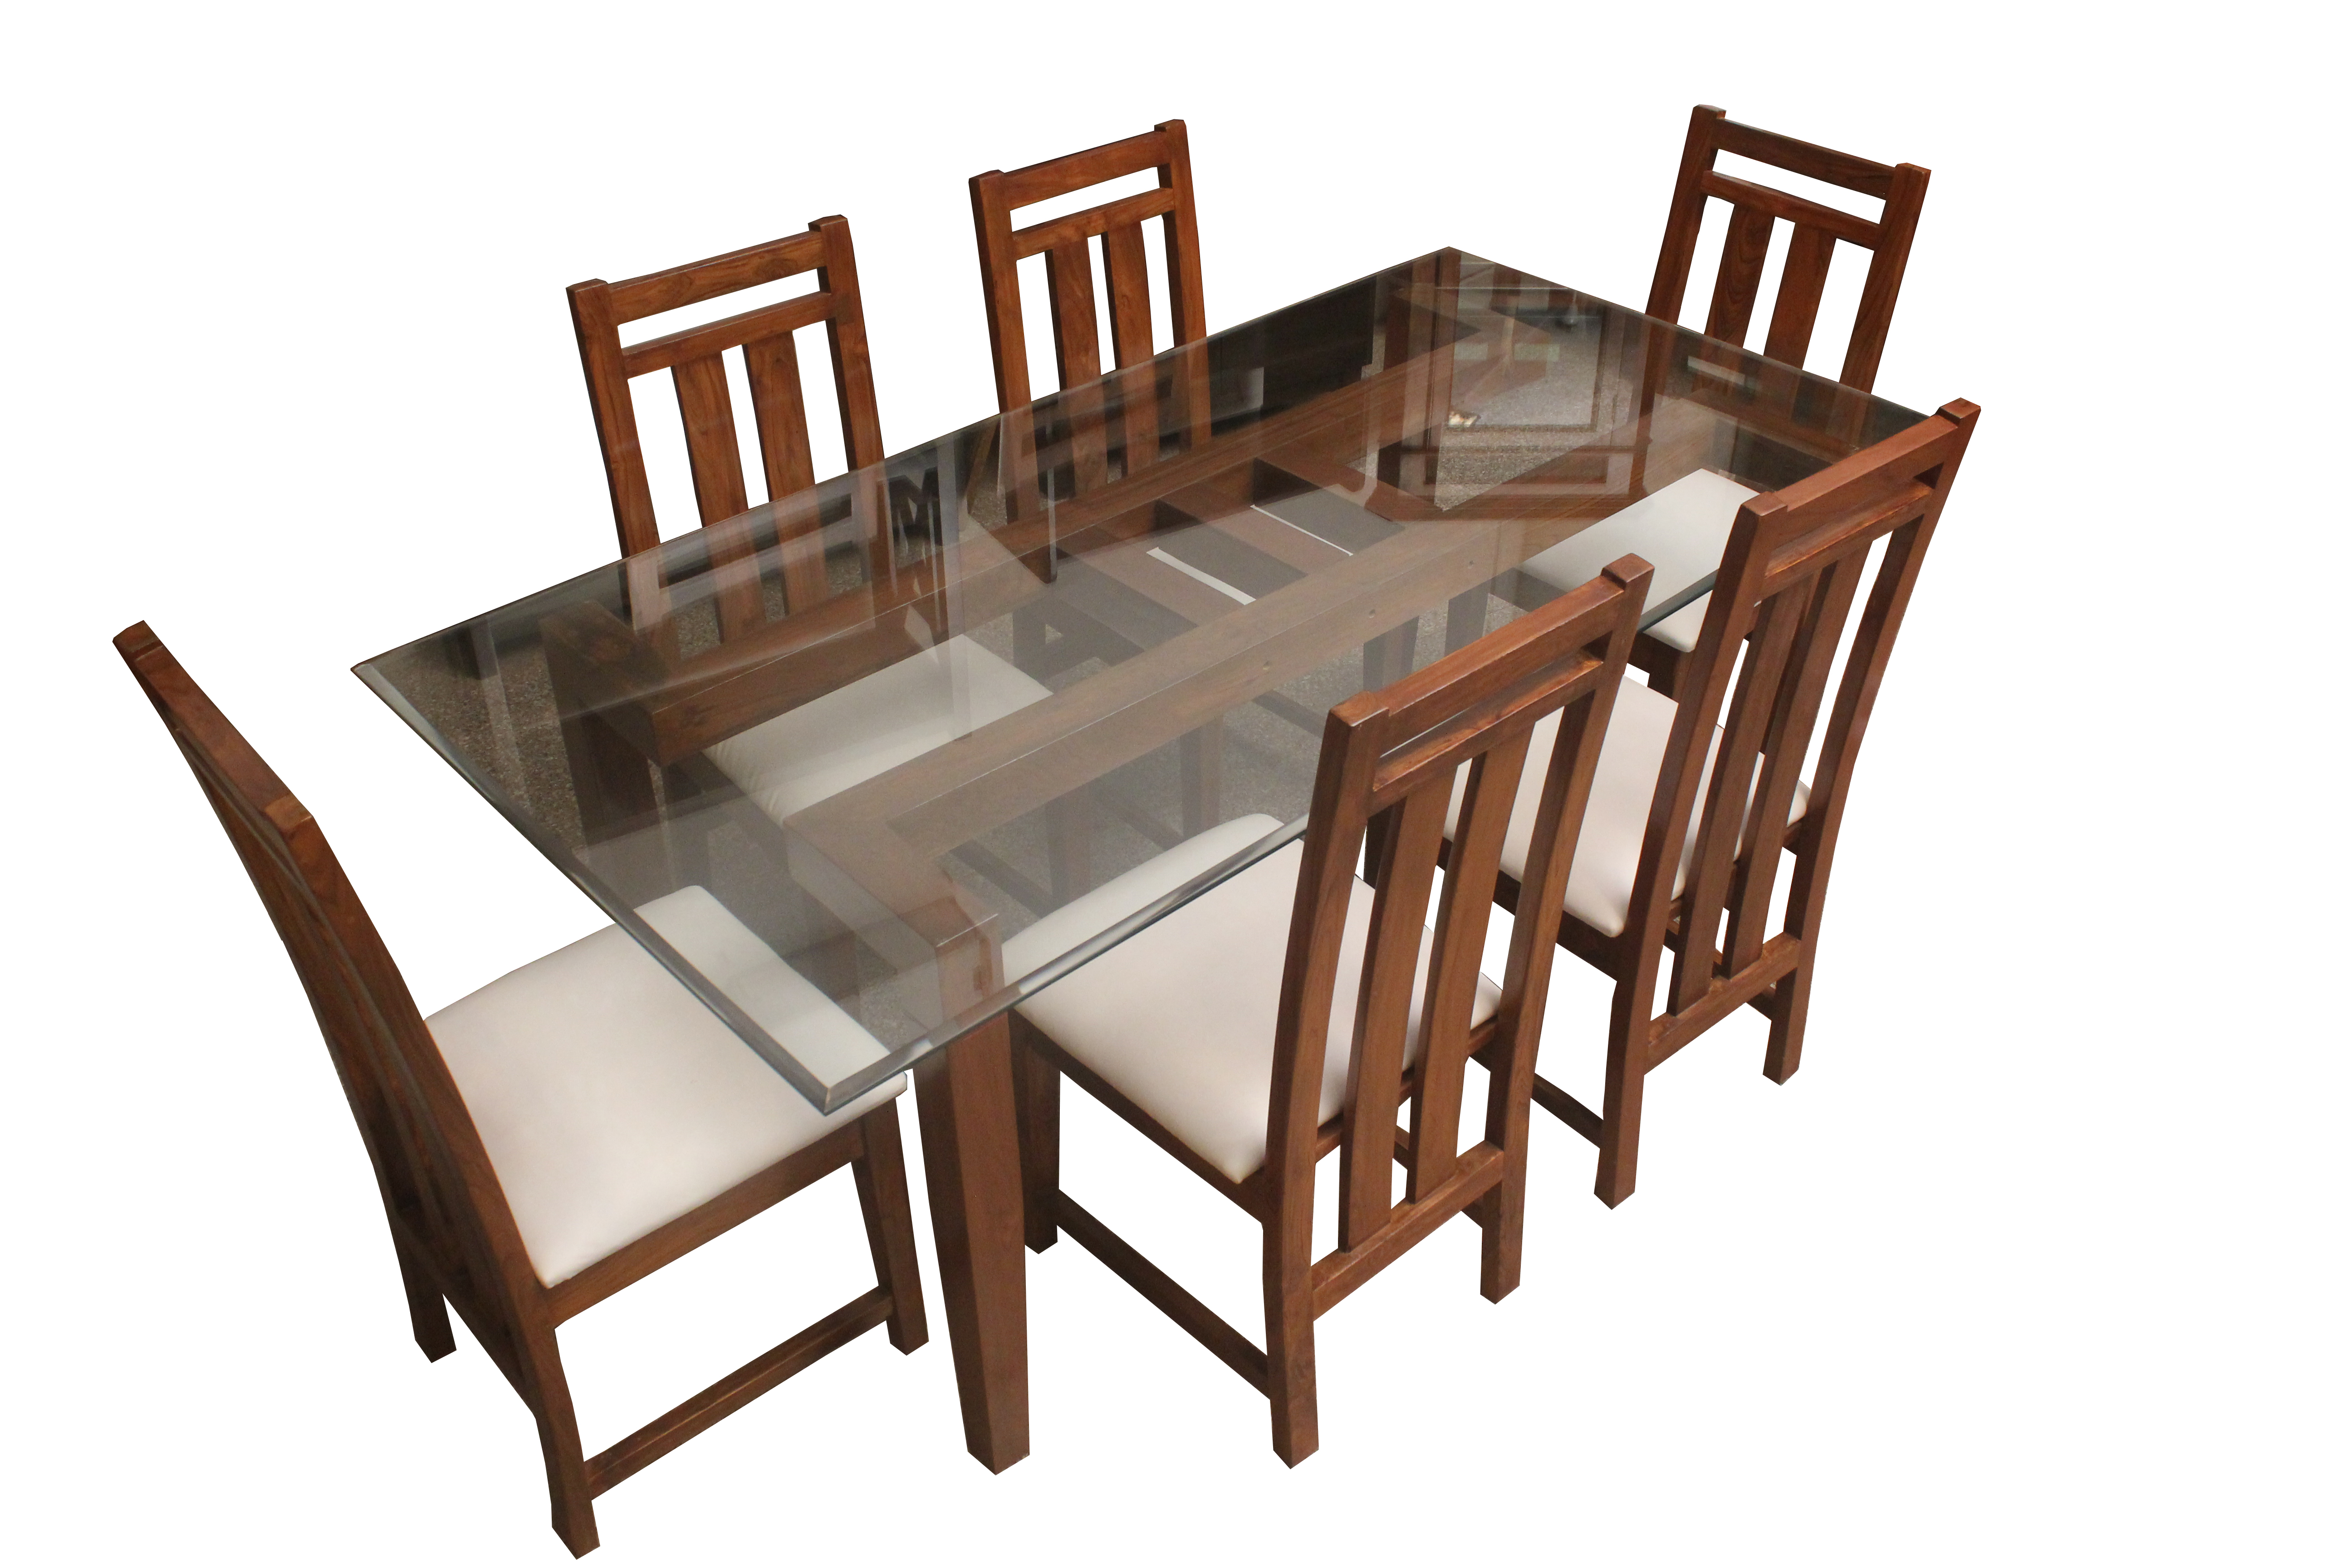 Twd 24 Glass Top 6 Seater Wooden Dinings Set Details Bic Furniture